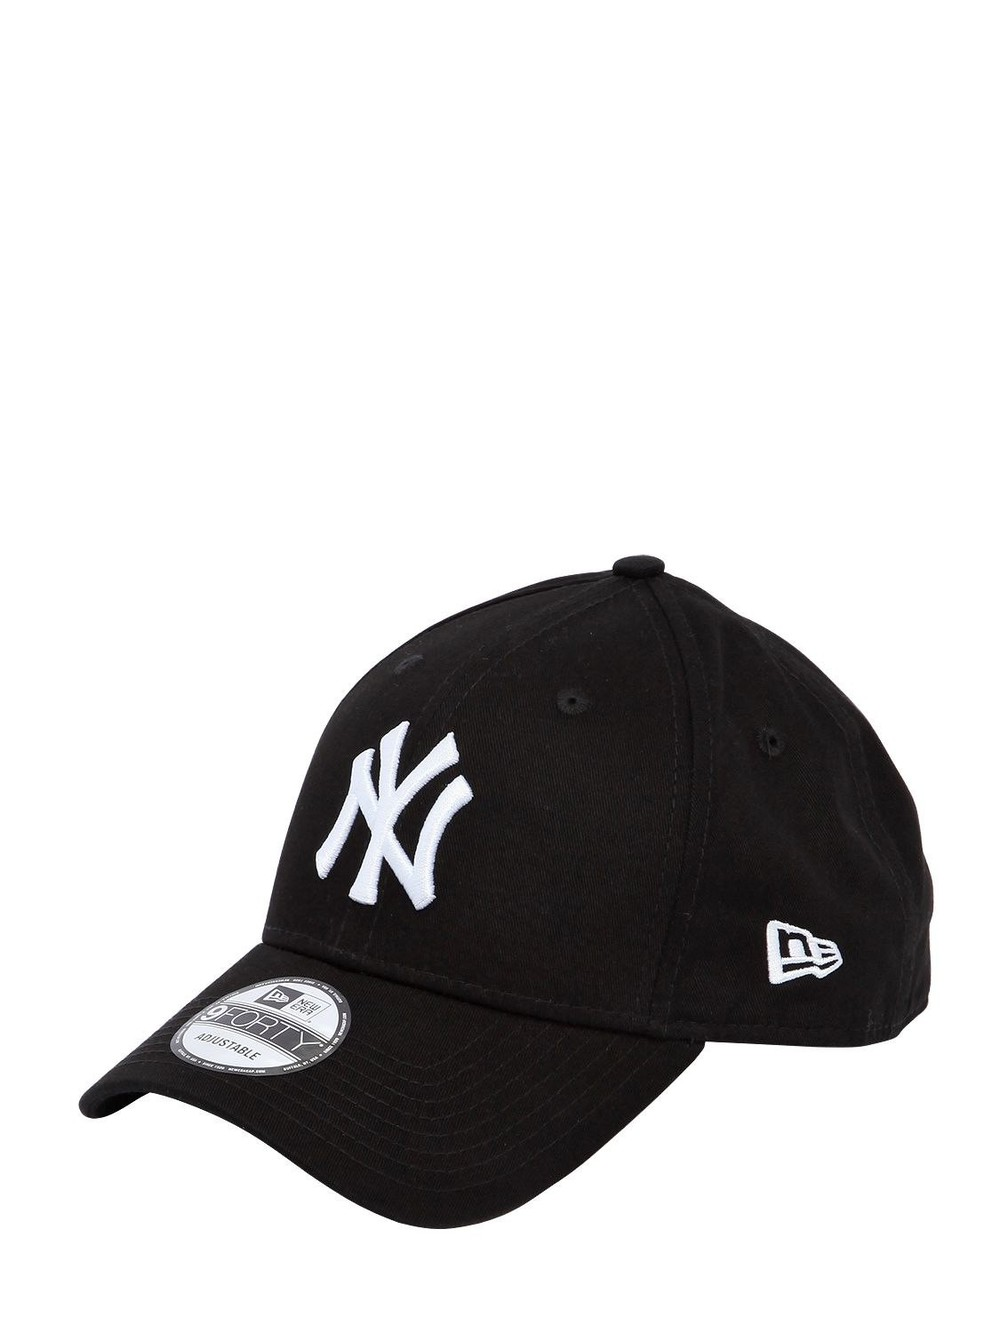 NEW ERA 9forty Mlb New York Yankees Hat in black